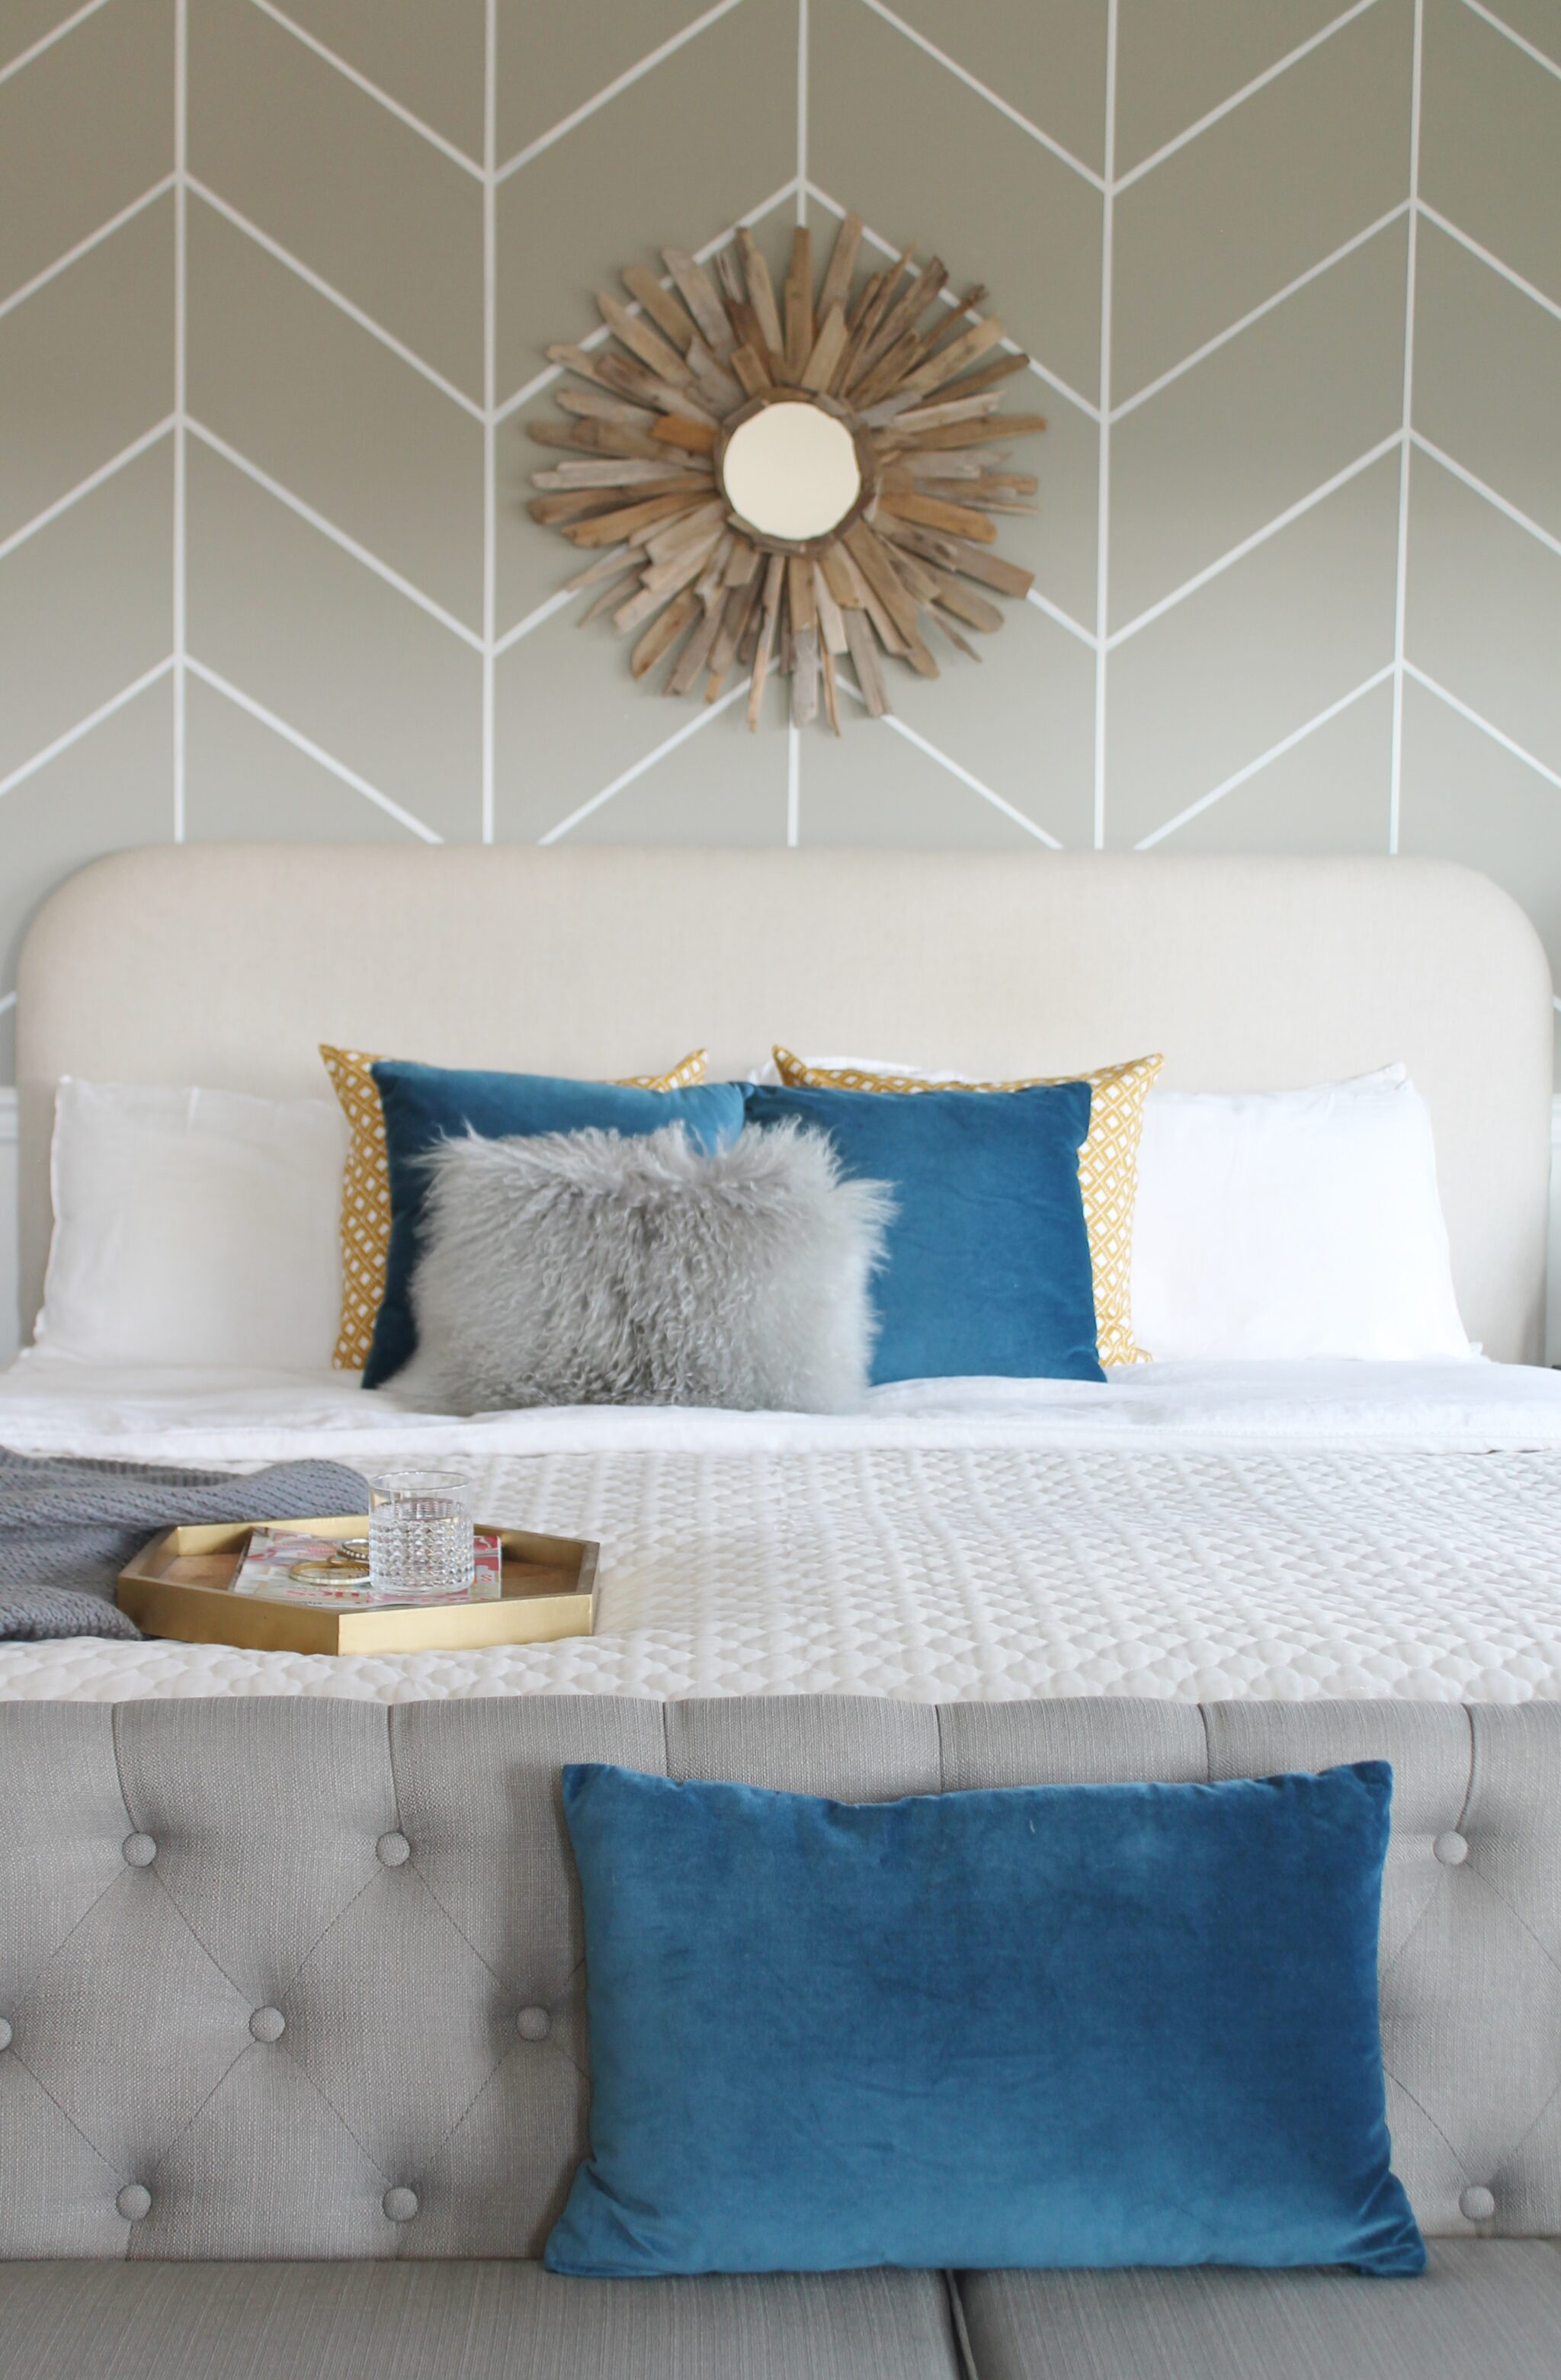 Do It Yourself Home Design: Master Bedroom Sofa + Who's Happy About It